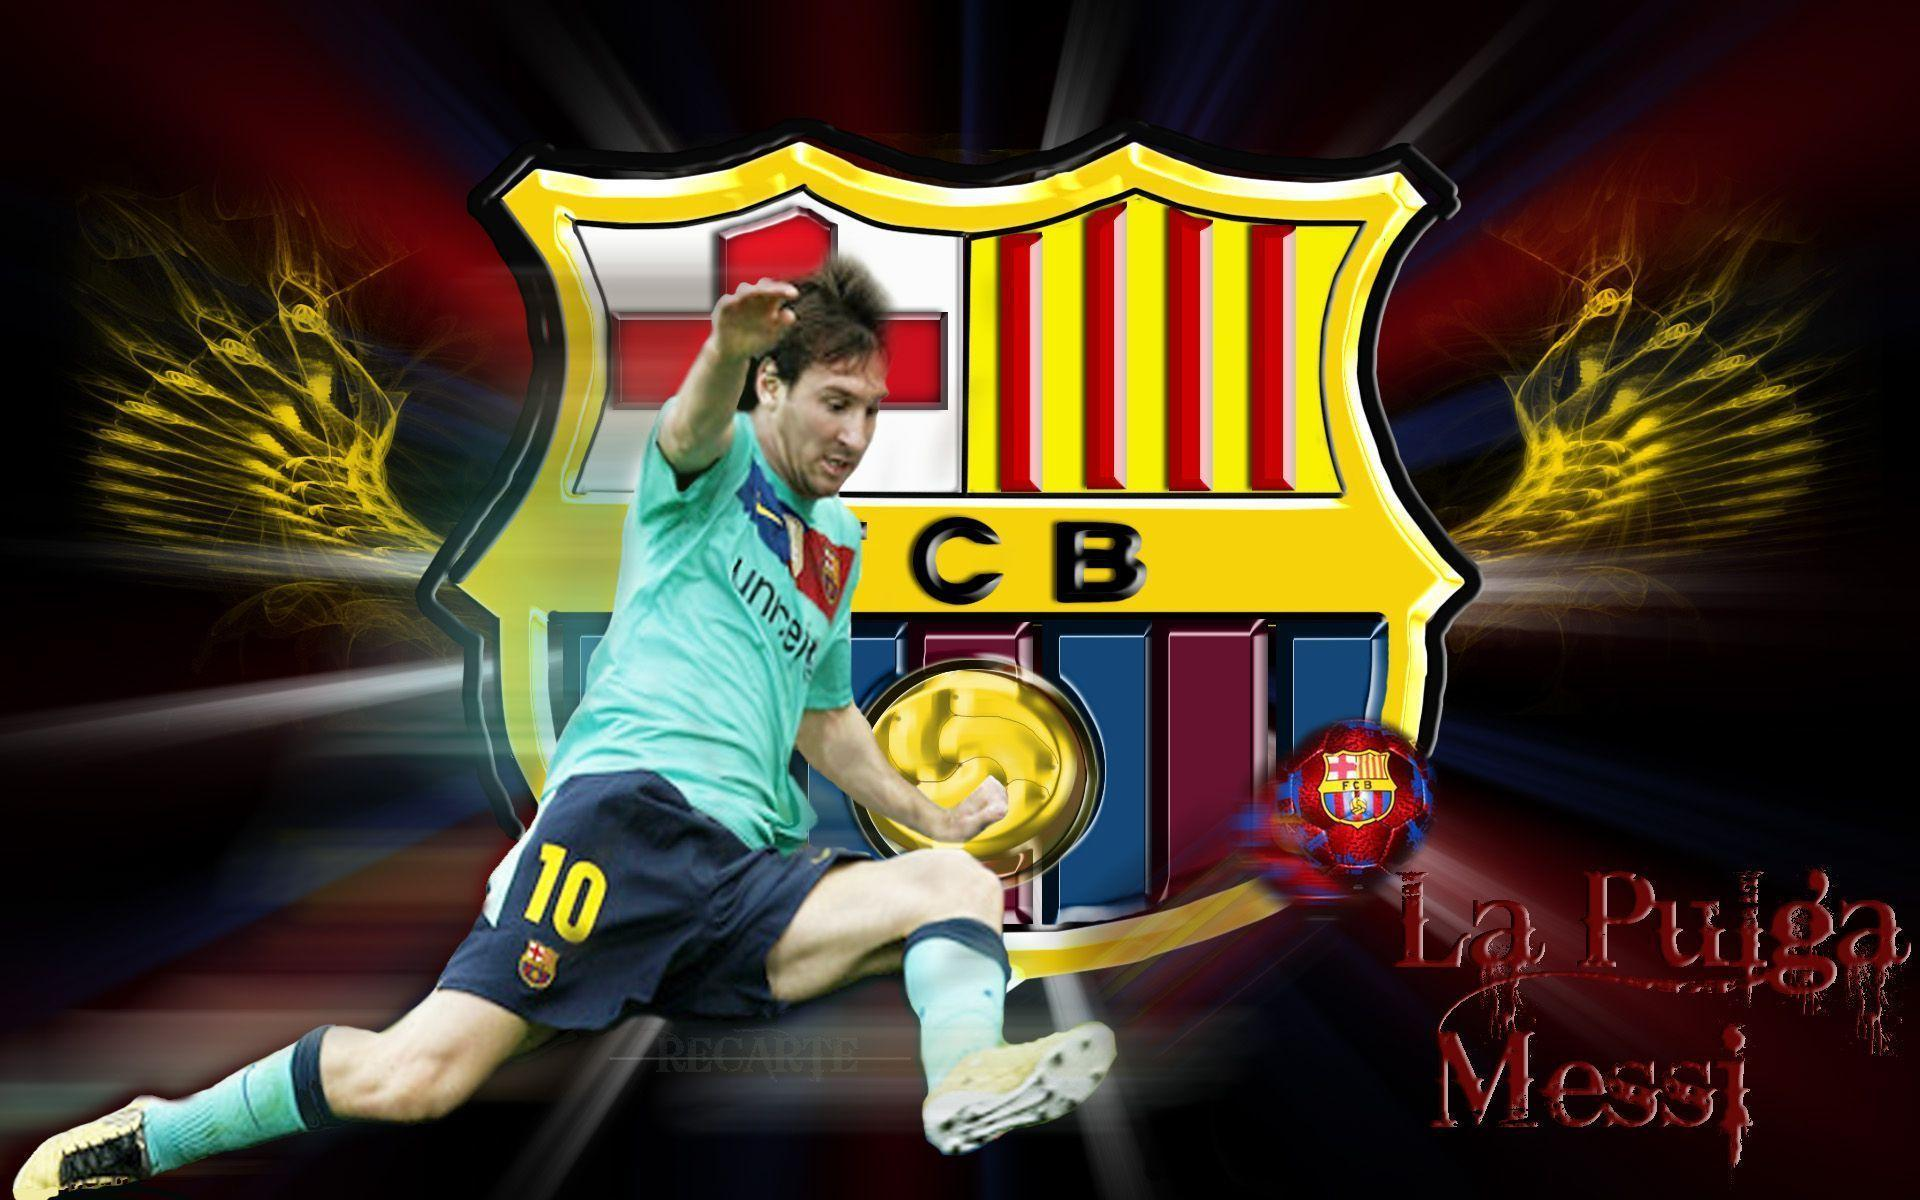 Messi HD Wallpapers | Lionel Messi Pictures & Images | Cool Wallpapers